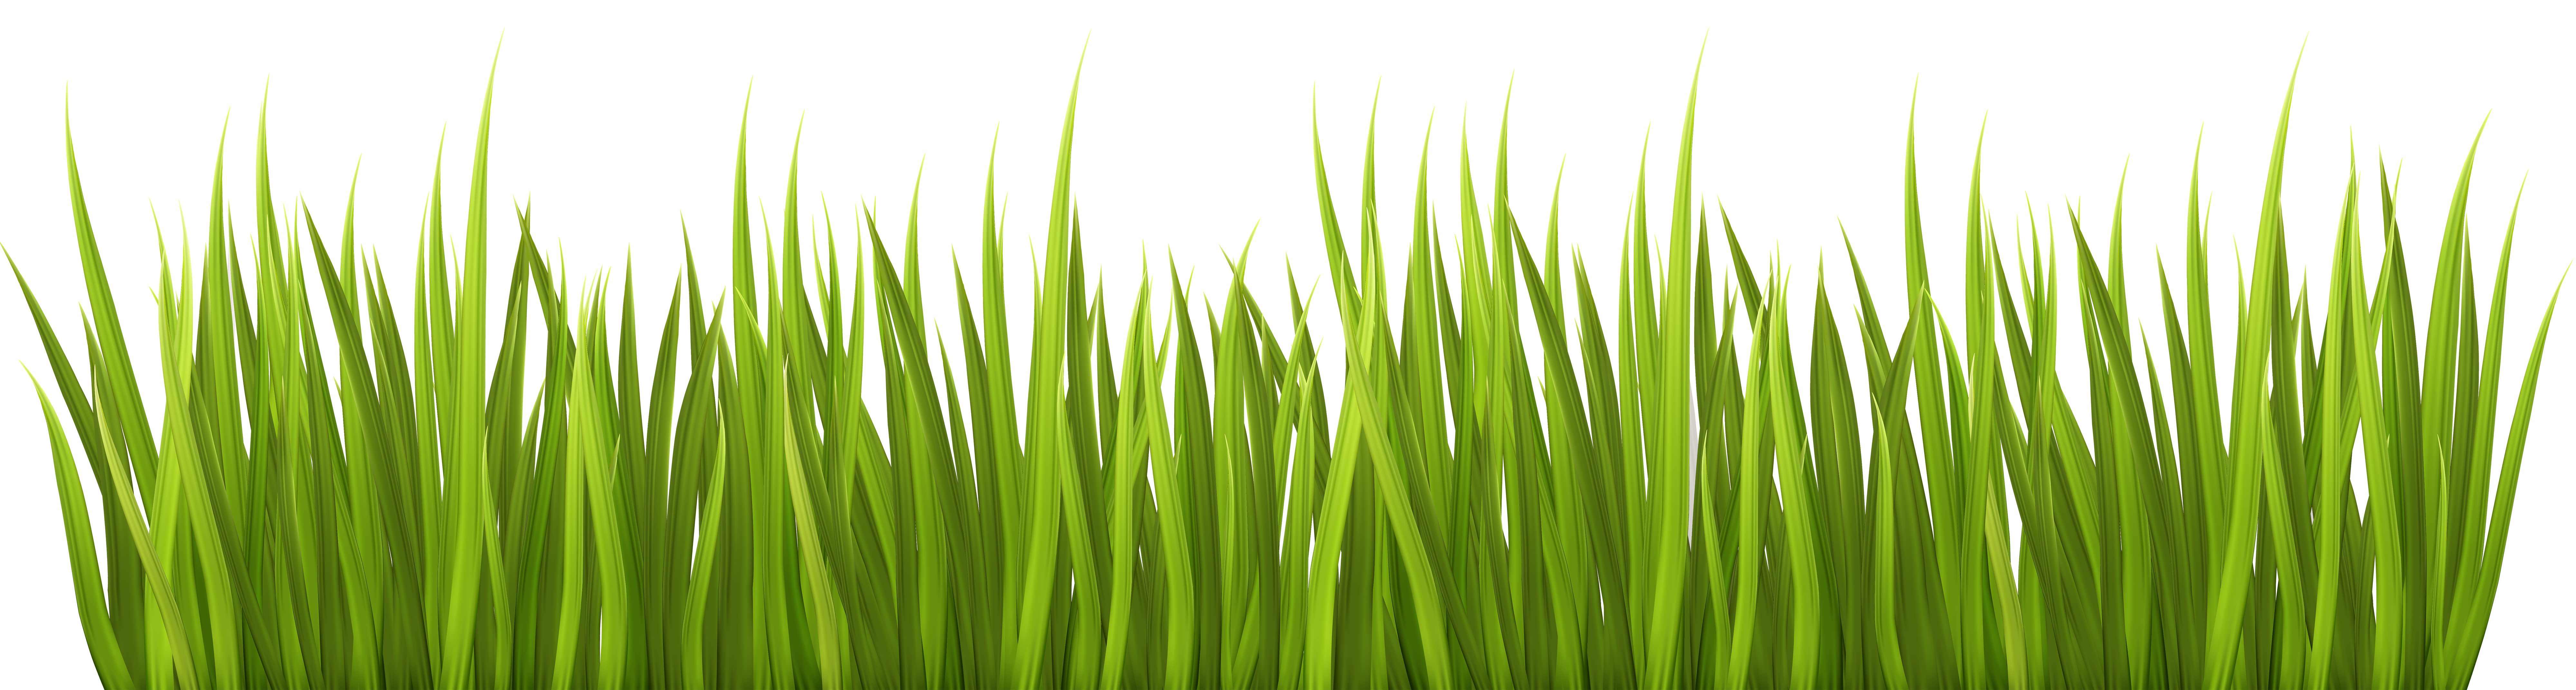 Spring Grass Png Transparent Clip Art Image Gallery Yopriceville - Grass, Transparent background PNG HD thumbnail